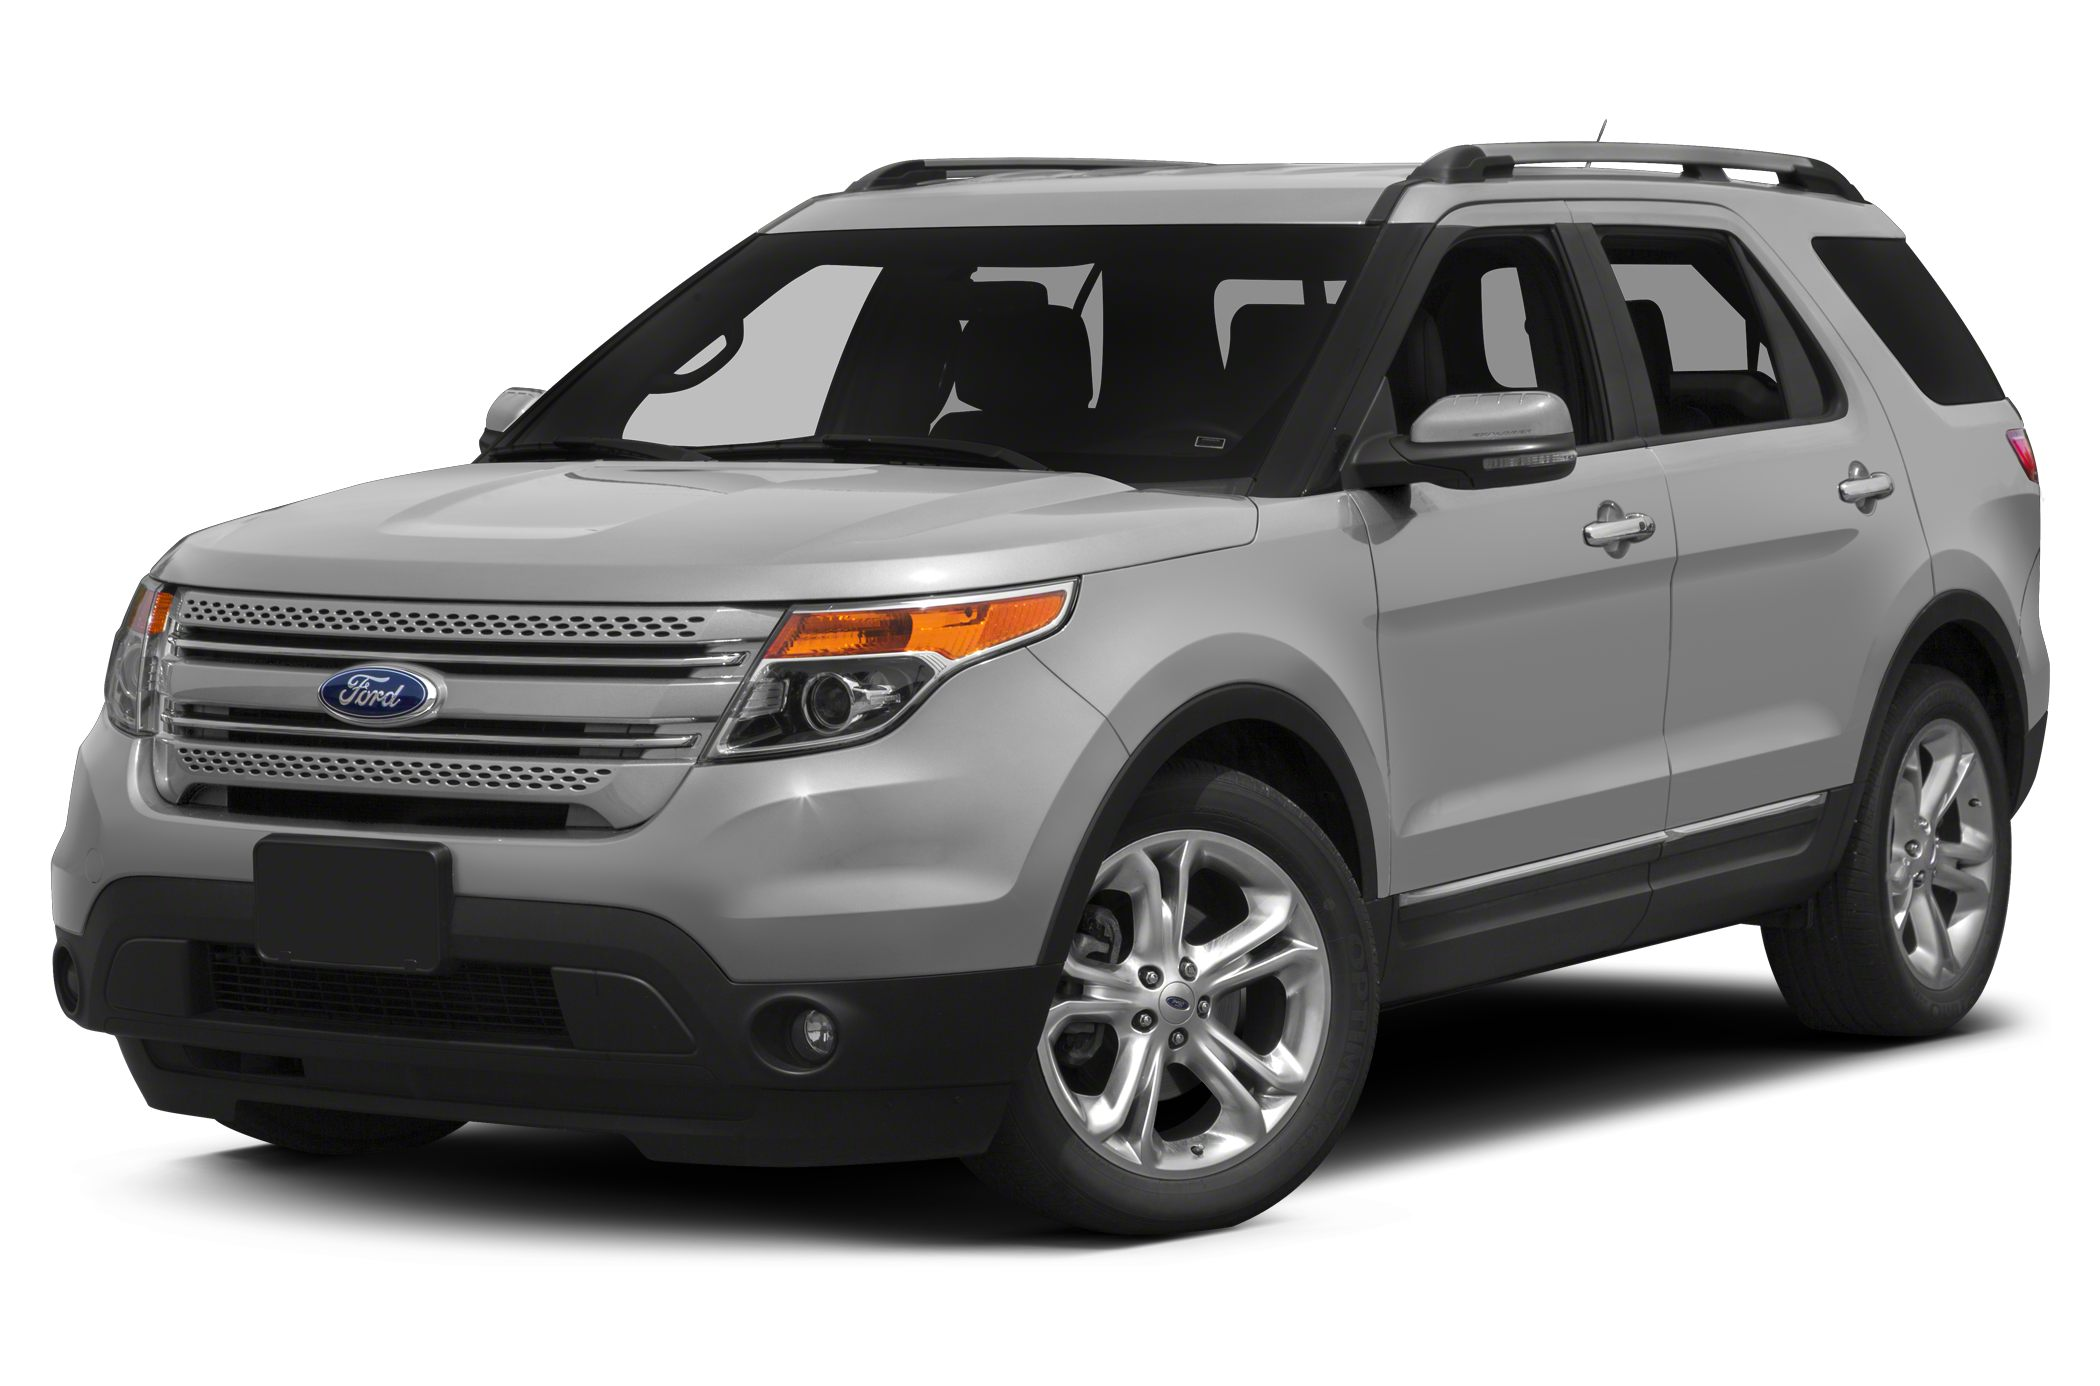 2015 Ford Explorer Limited Dont let the miles fool you At Kris Brown Chevrolet Buick GMC YOURE